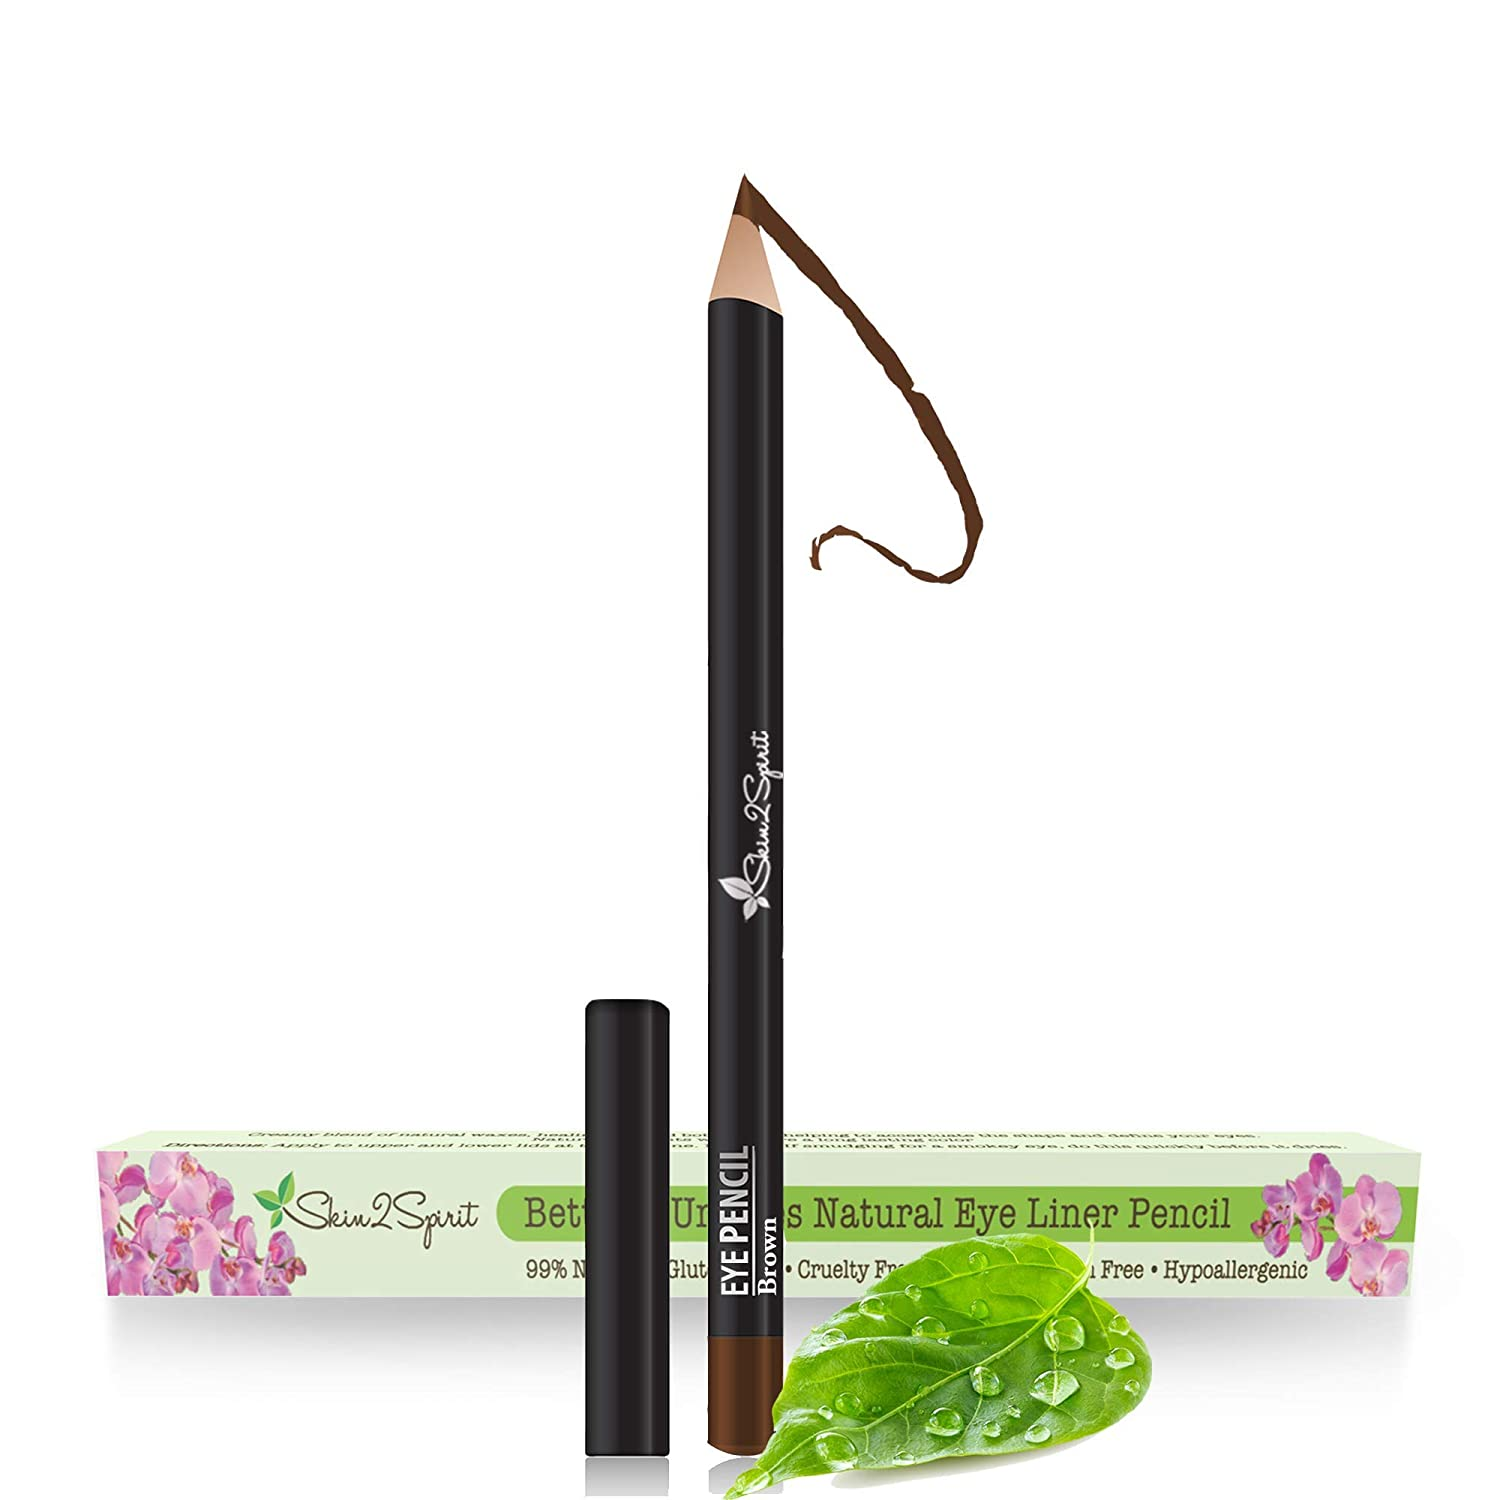 Better'n Ur Eyes Natural Eyeliner Pencil: BROWN | Hypoallergenic & Great for Sensitive Eyes | Natural | Vegan | Certified Cruelty Free | Paraben Free | Gluten Free | Smooth Application | Long Lasting